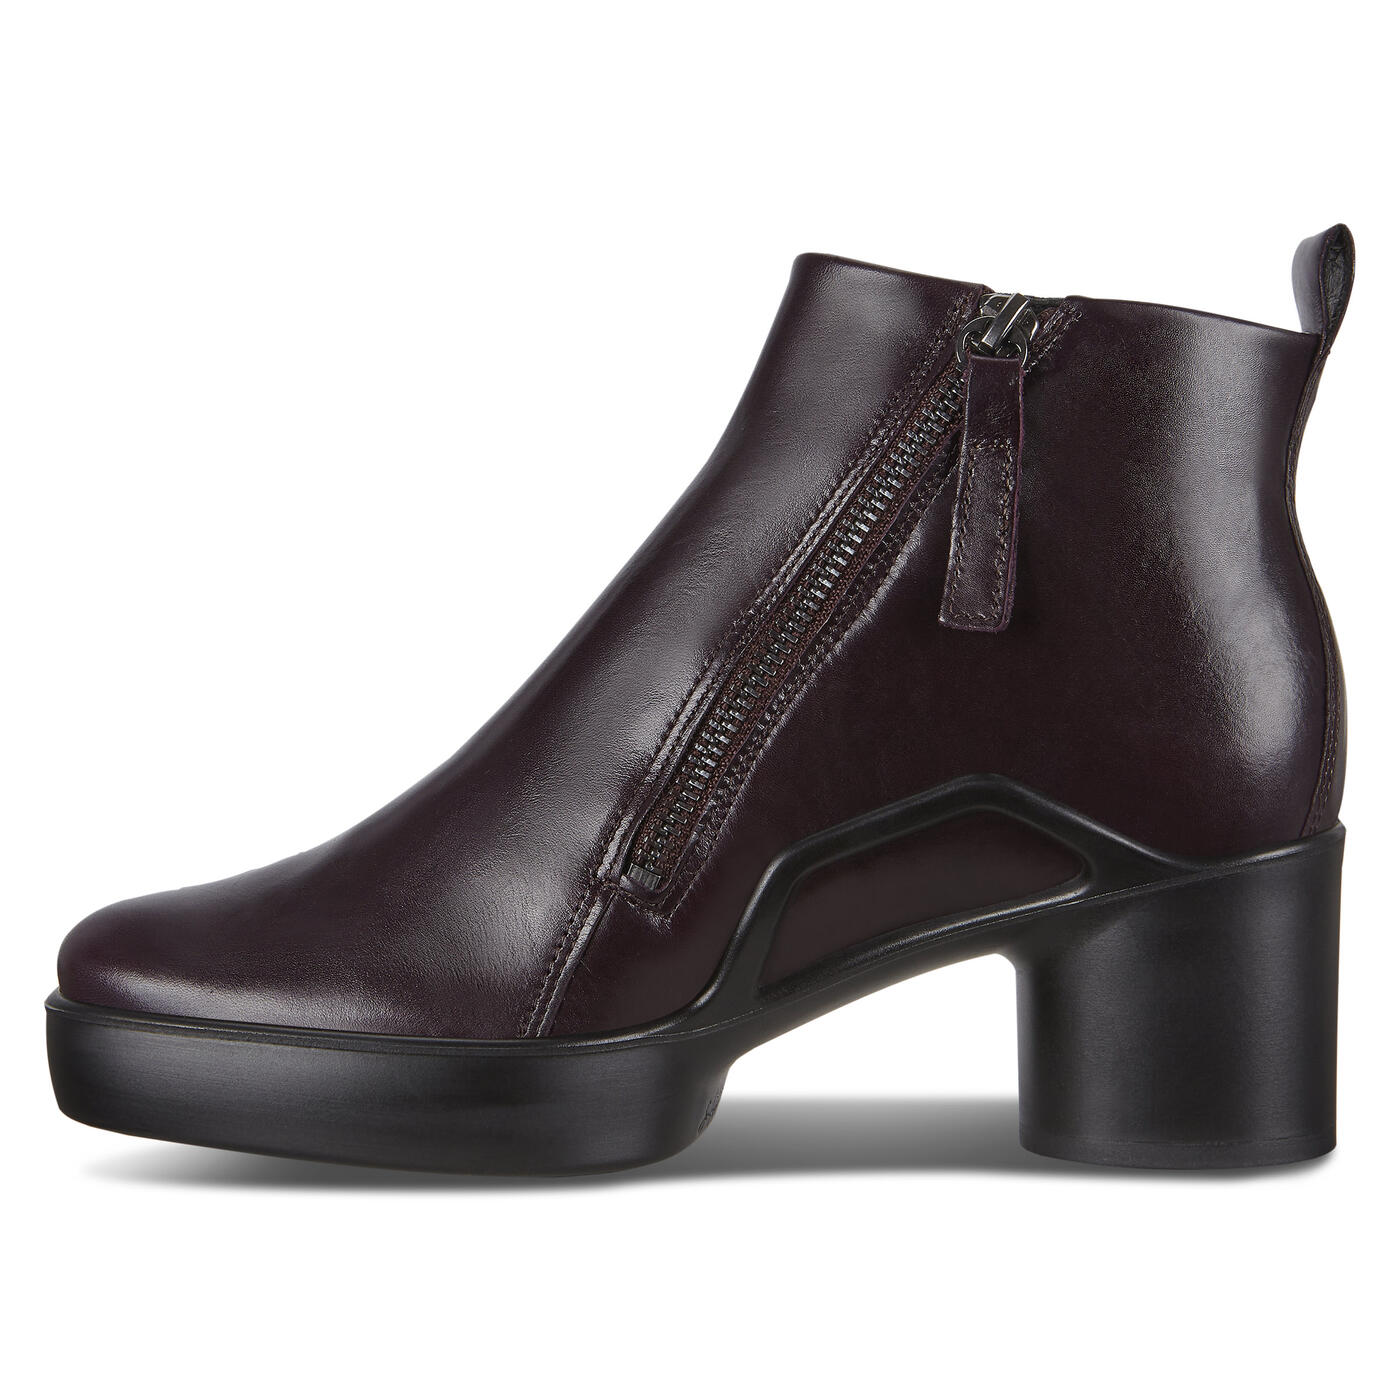 ECCO SHAPE SCULPTED MOTION 35